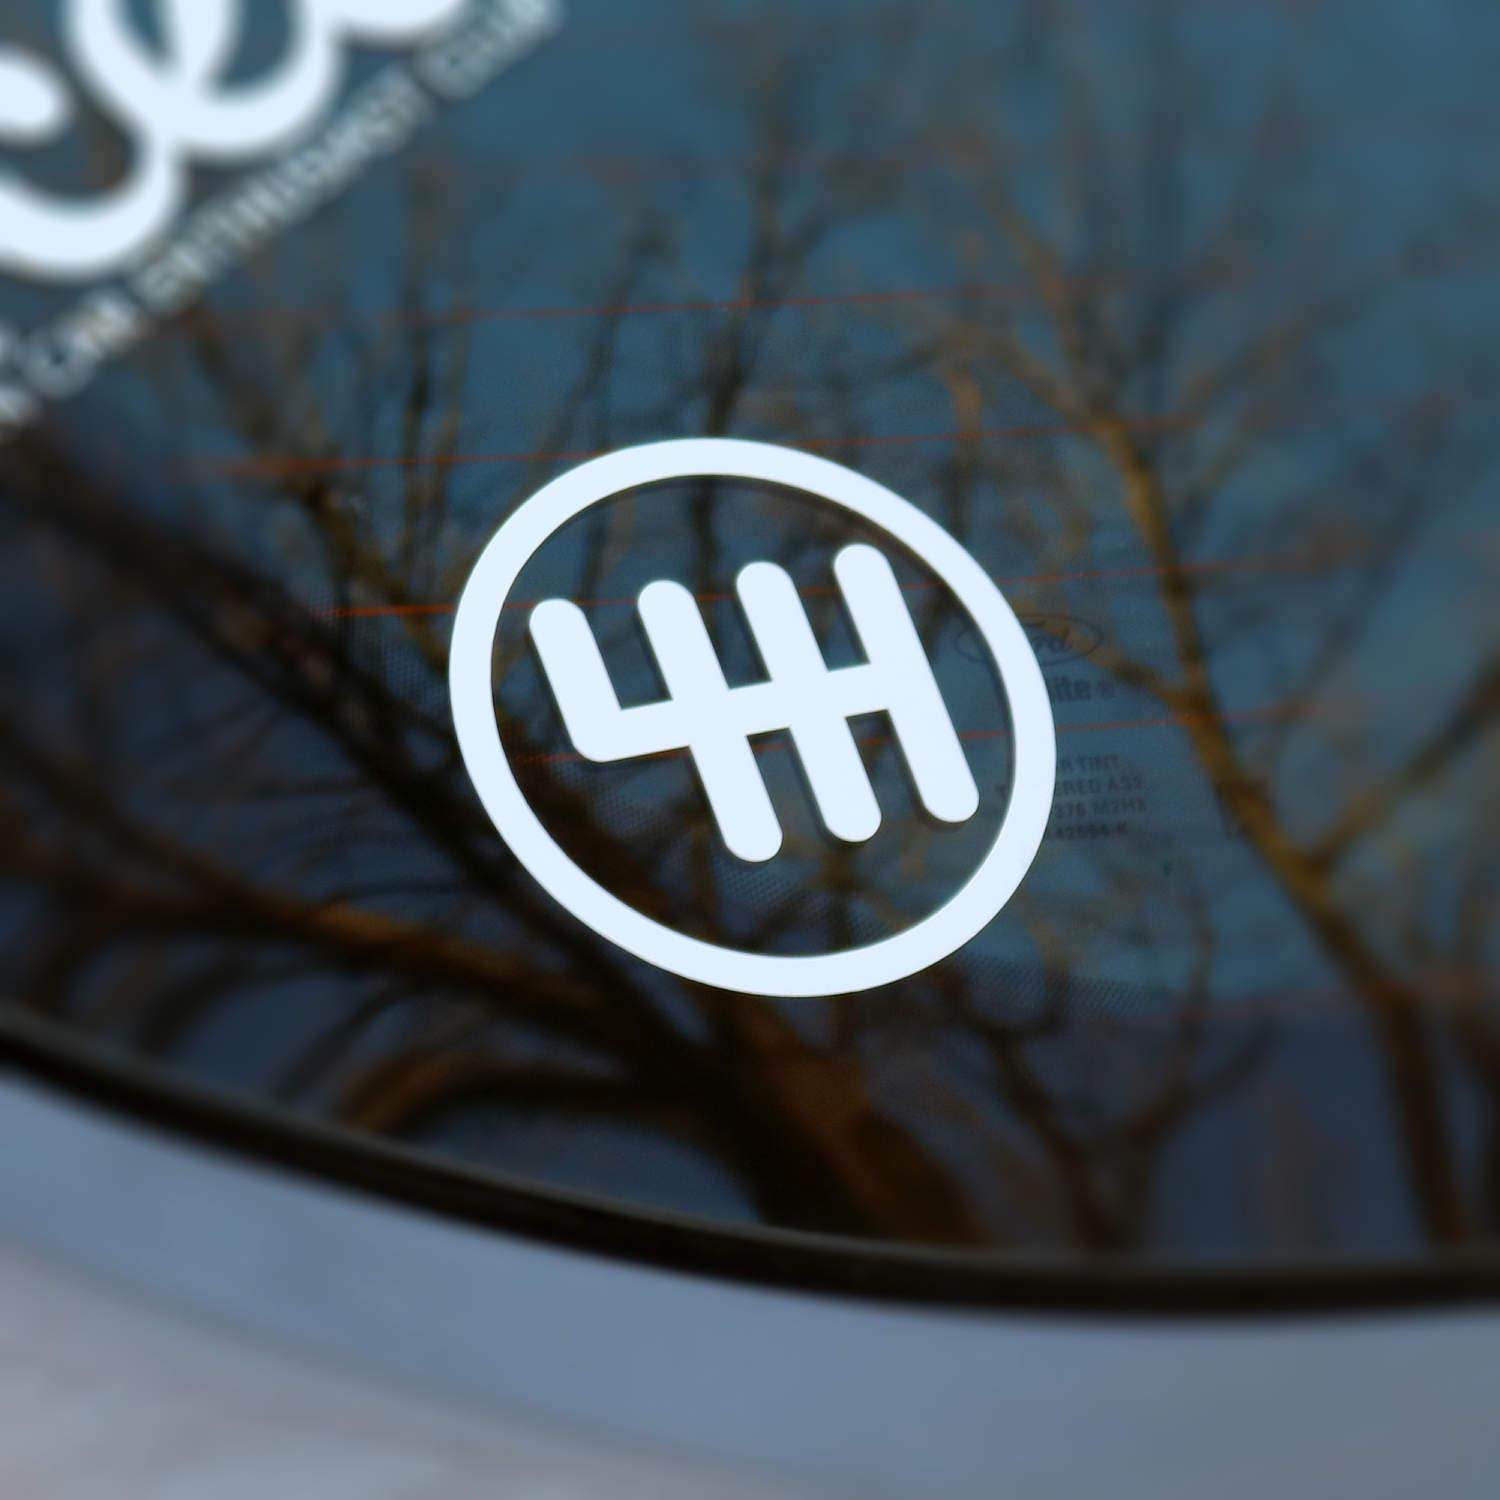 6 Speed Vinyl Decal Sticker Manual Transmission Stick Manual Guide